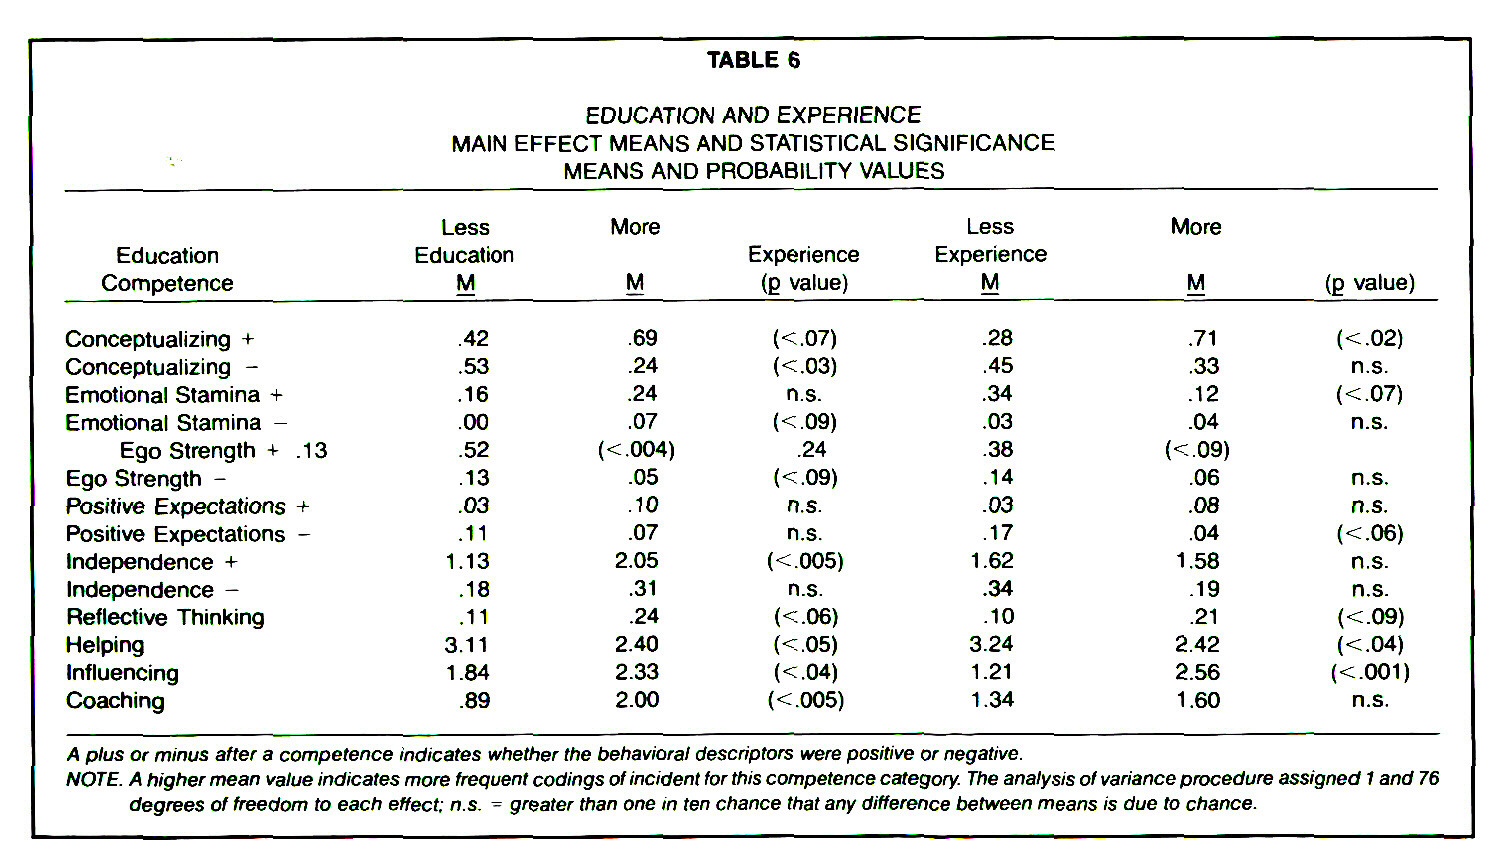 TABLE 6EDUCATION AND EXPERIENCE MAIN EFFECT MEANS AND STATISTICAL SIGNIFICANCE MEANS AND PROBABILITY VALUES